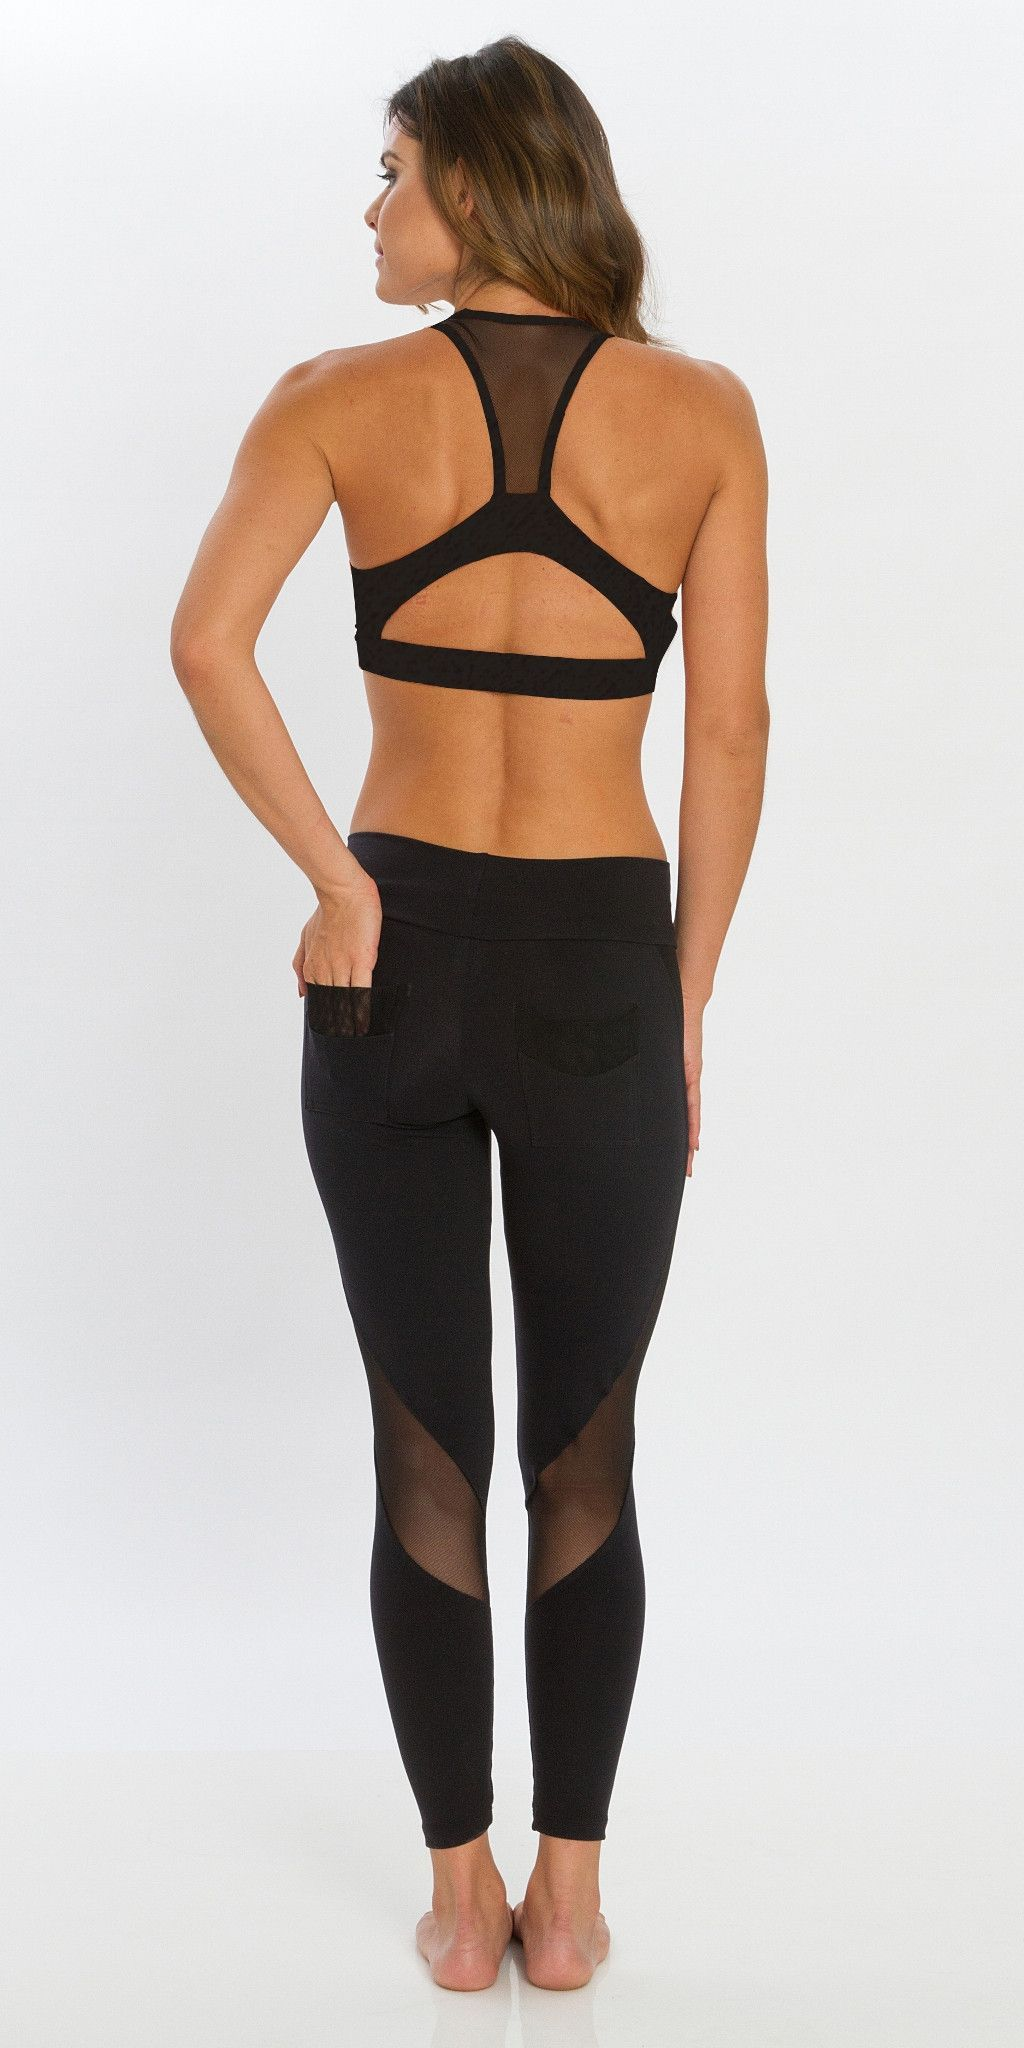 ad9e89249a48b5 A winning combination of net panels with our favorite Microtouch fabric.  Has pockets on the back. Feels great, like butter on the body. A perfect  legging ...